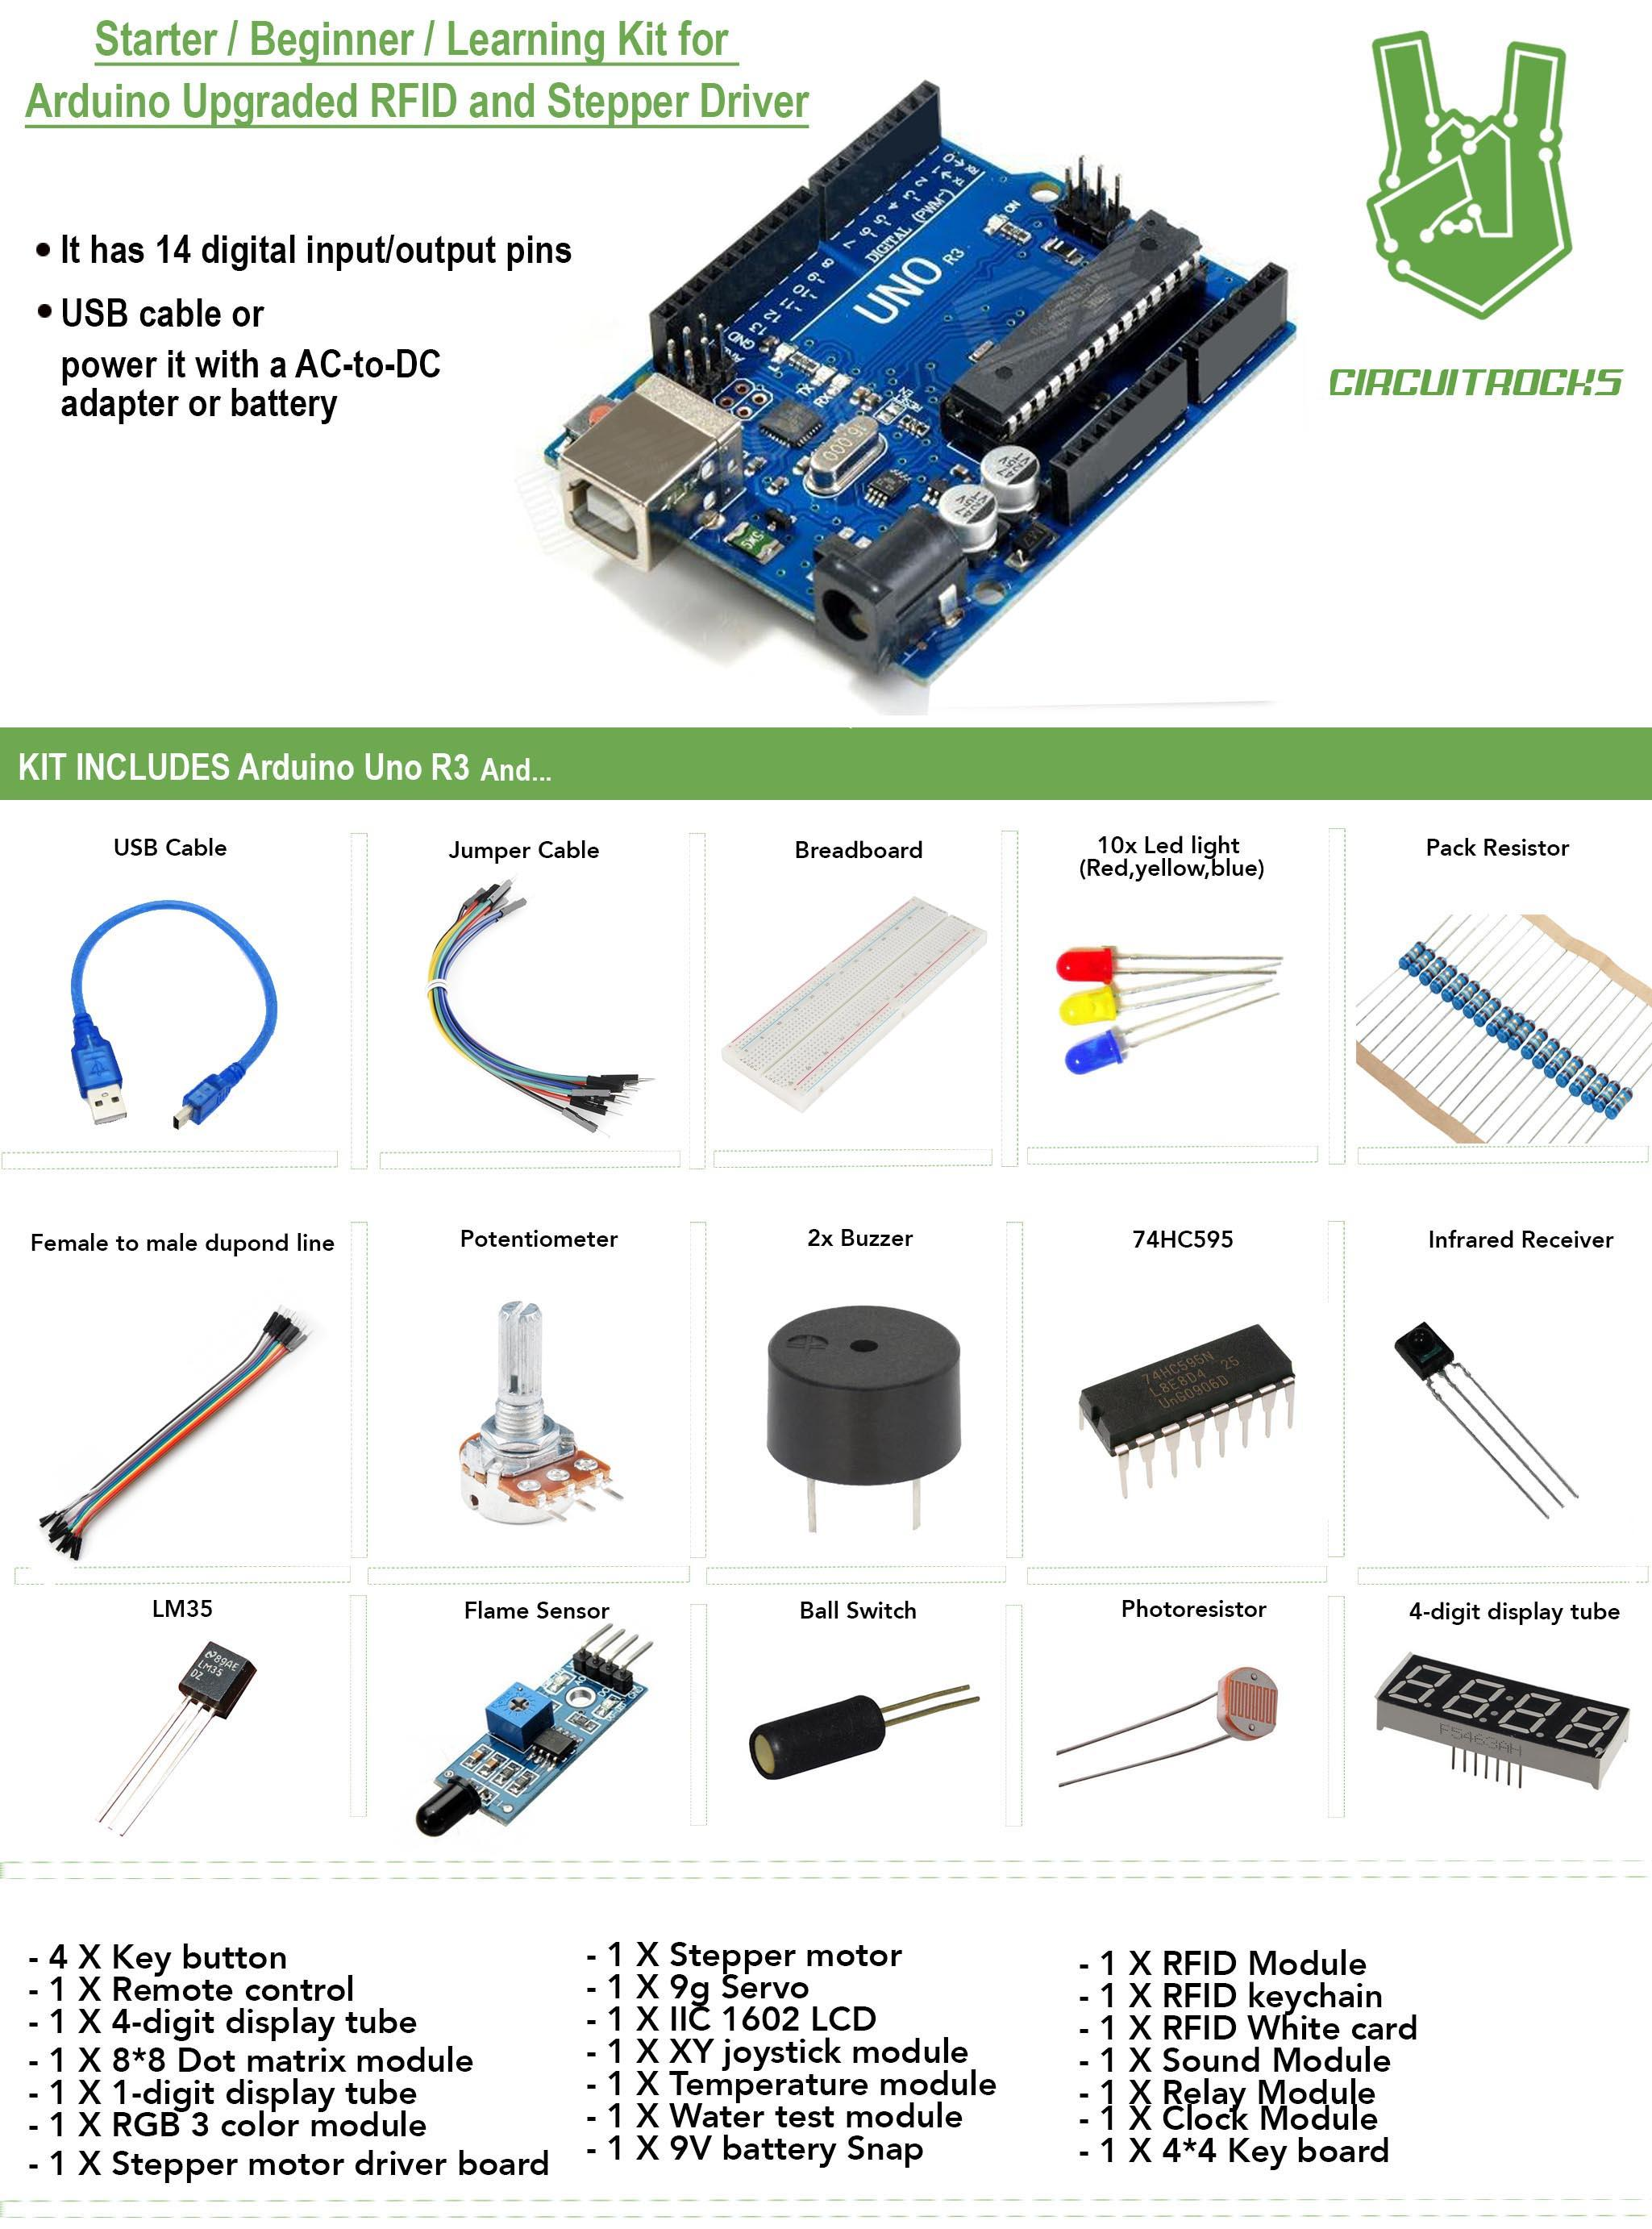 2019 Starter Kit for Arduino Upgraded RFID and Stepper Driver Latest